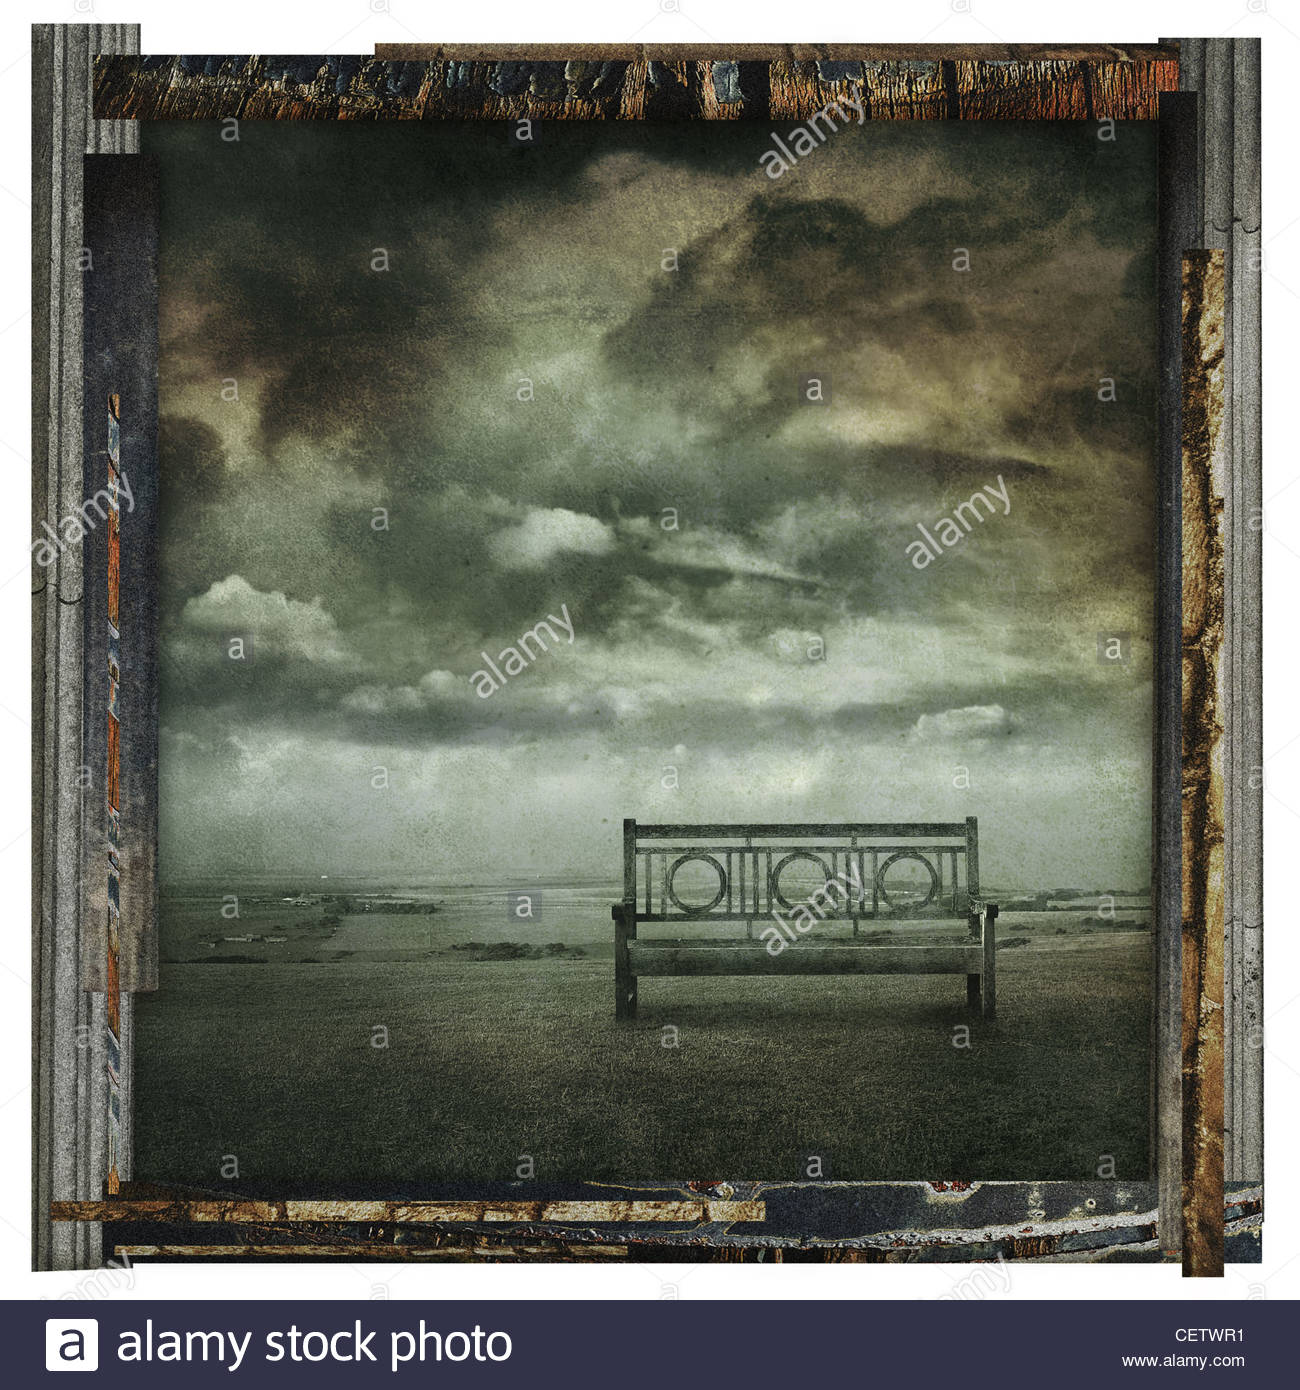 old bench photo print - Stock Image